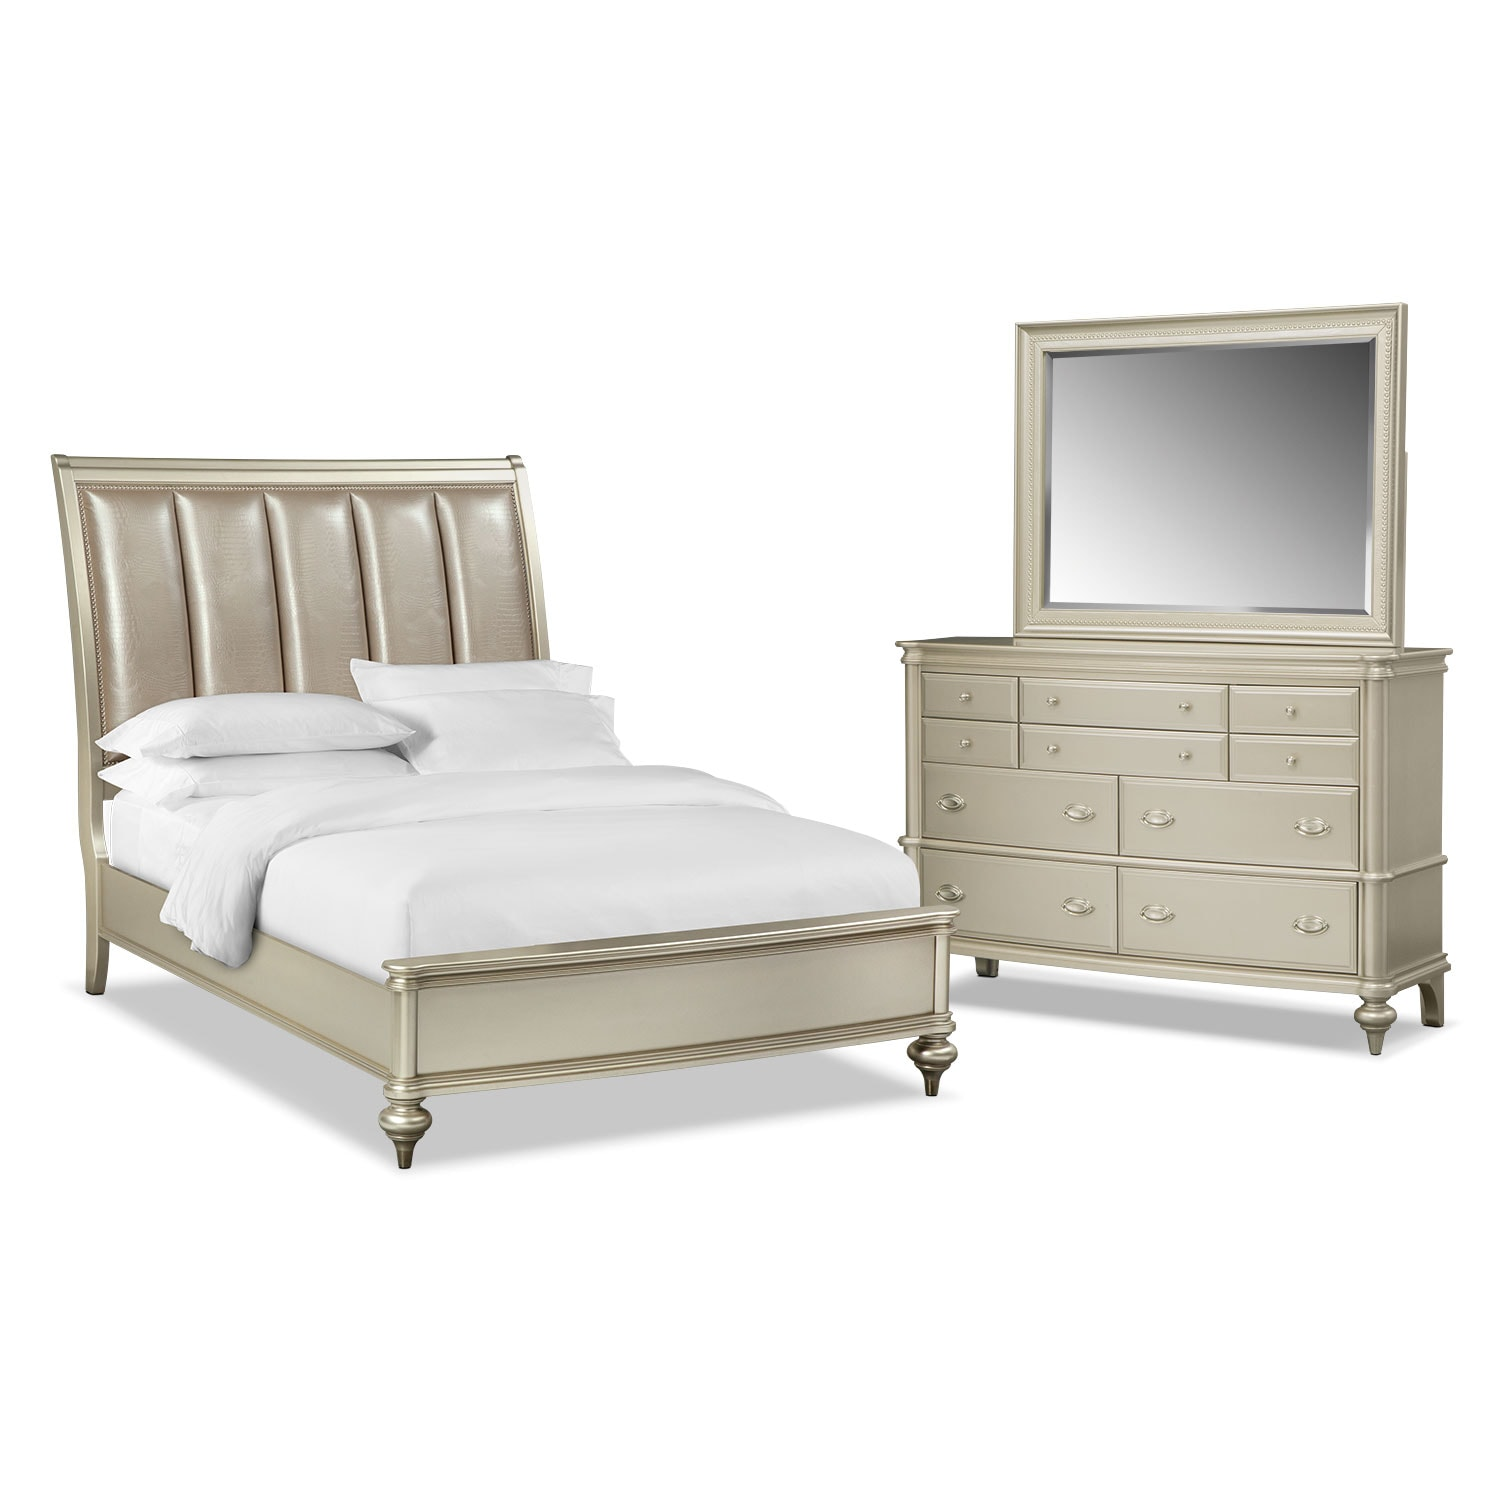 Bedroom Furniture - Esquire 5-Piece King Bedroom Set - Platinum